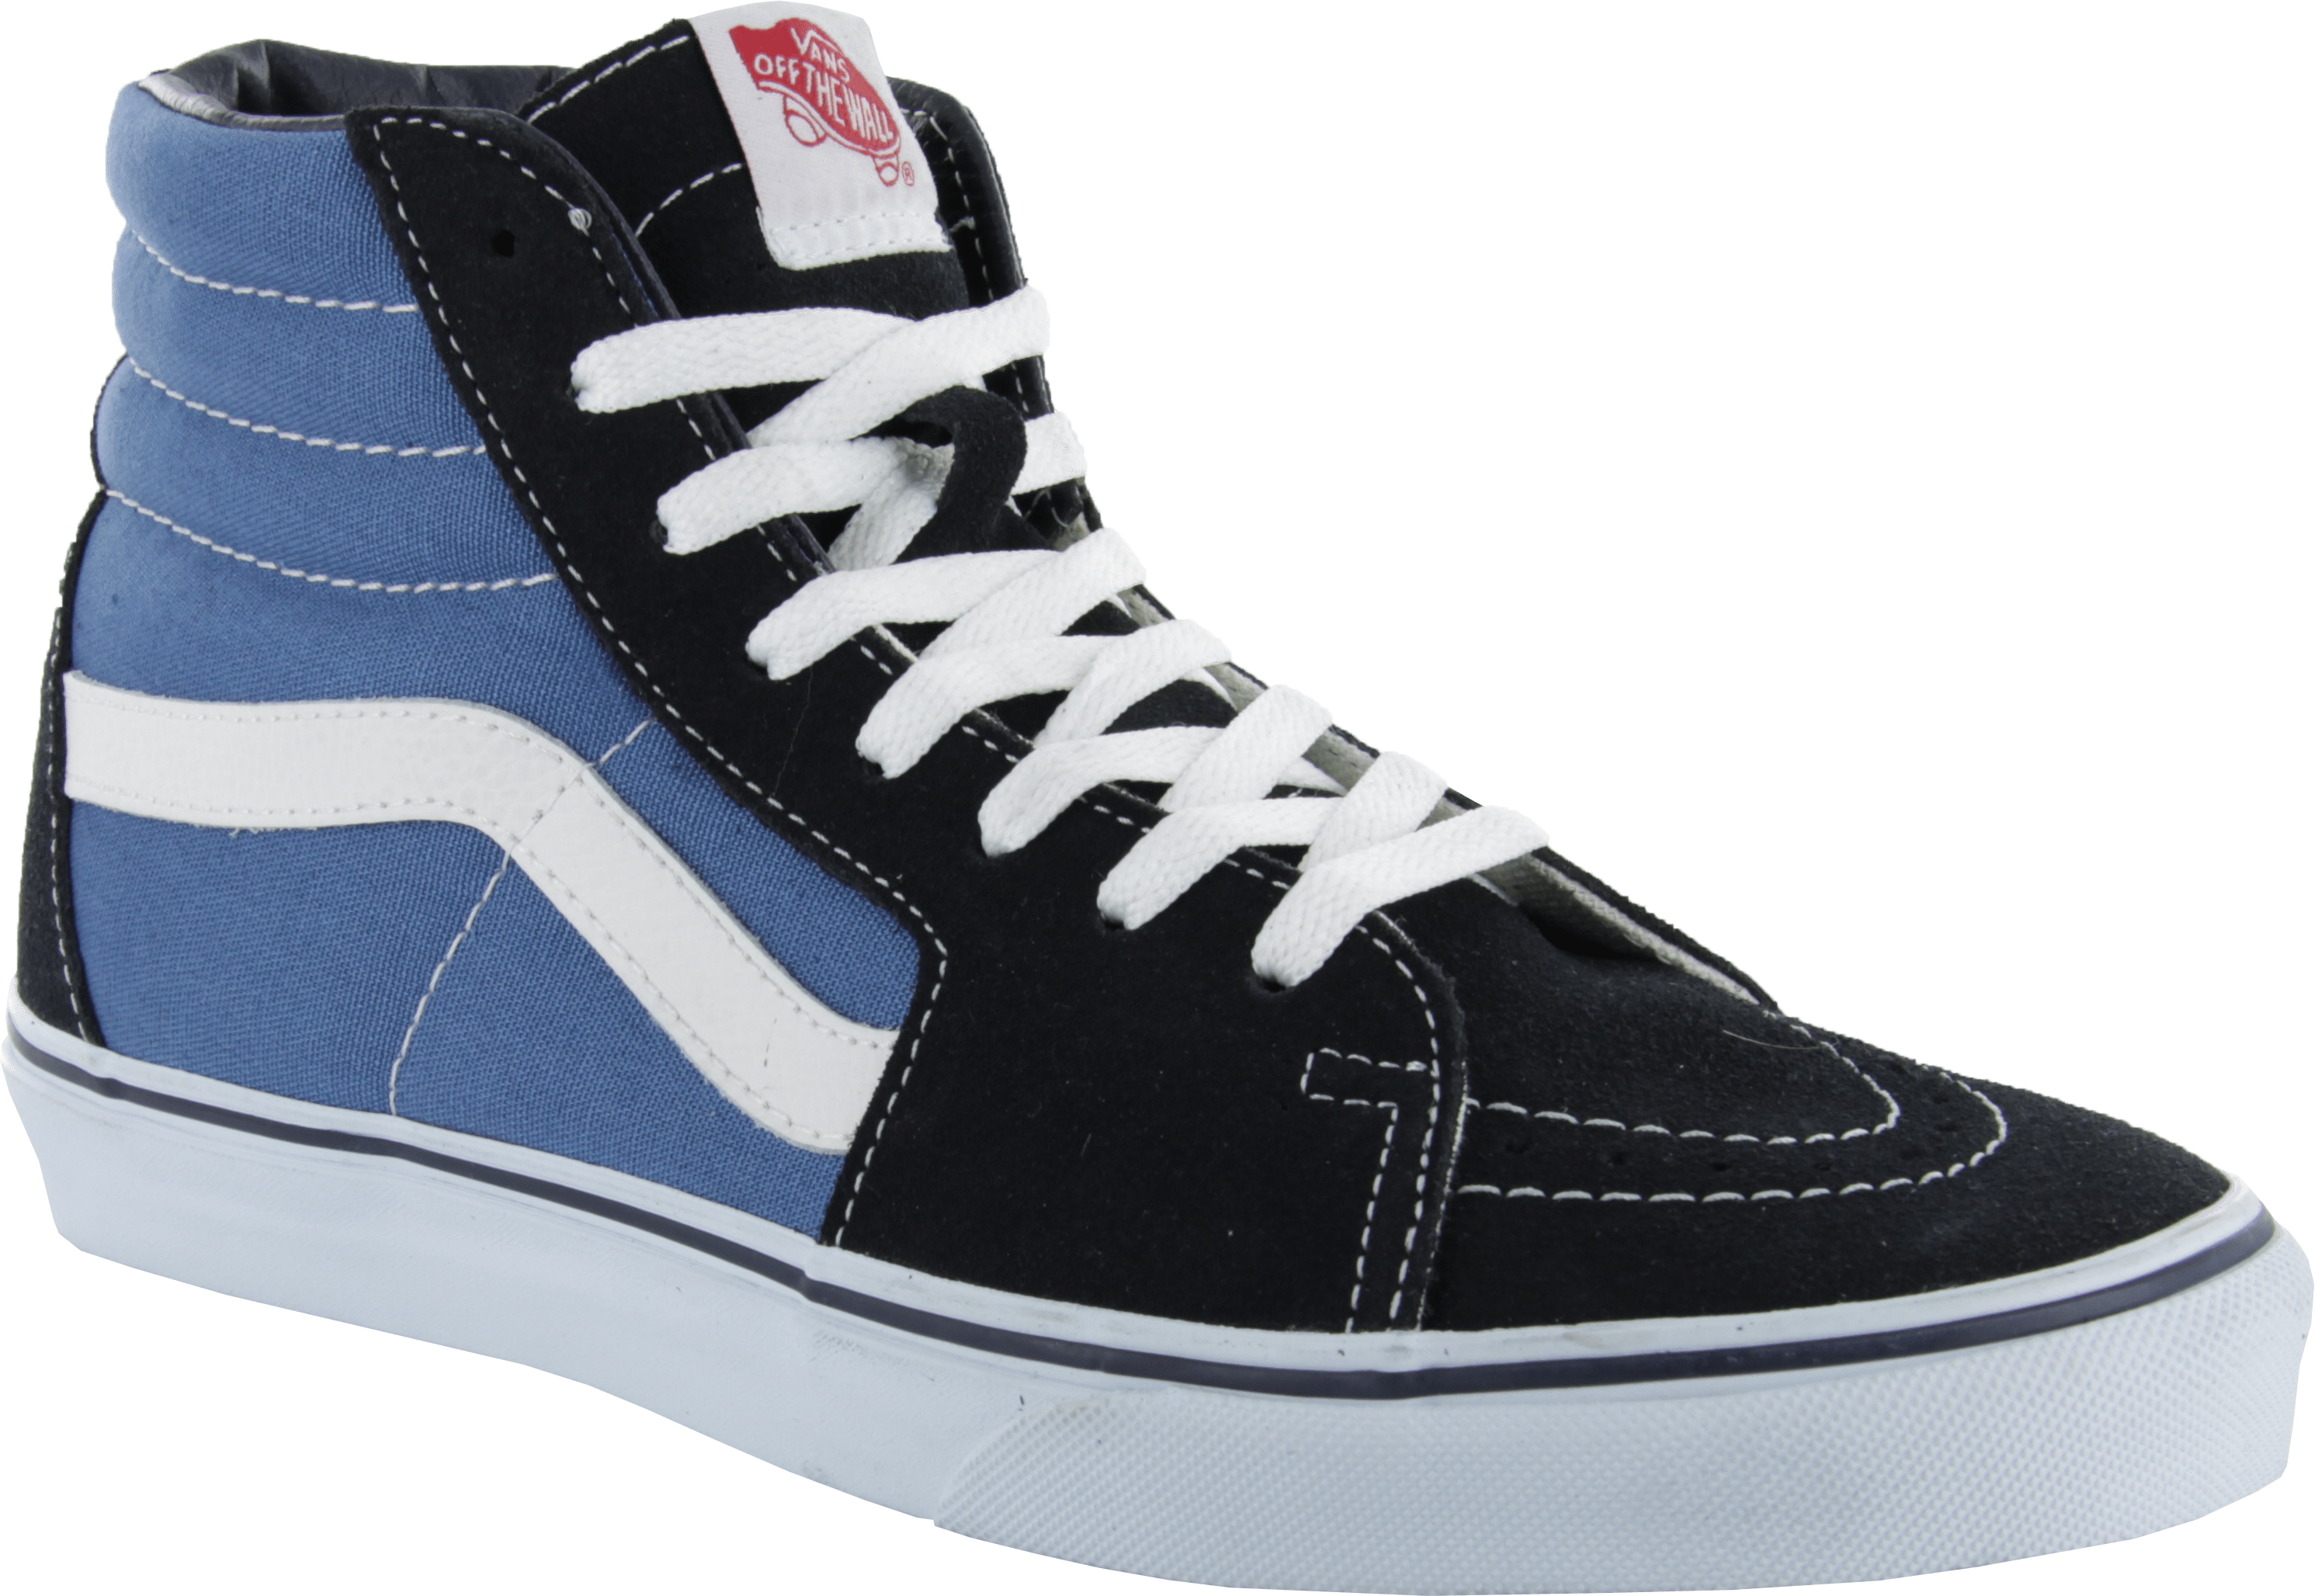 buy cheap high top skate shoes compare products prices for best uk deals. Black Bedroom Furniture Sets. Home Design Ideas